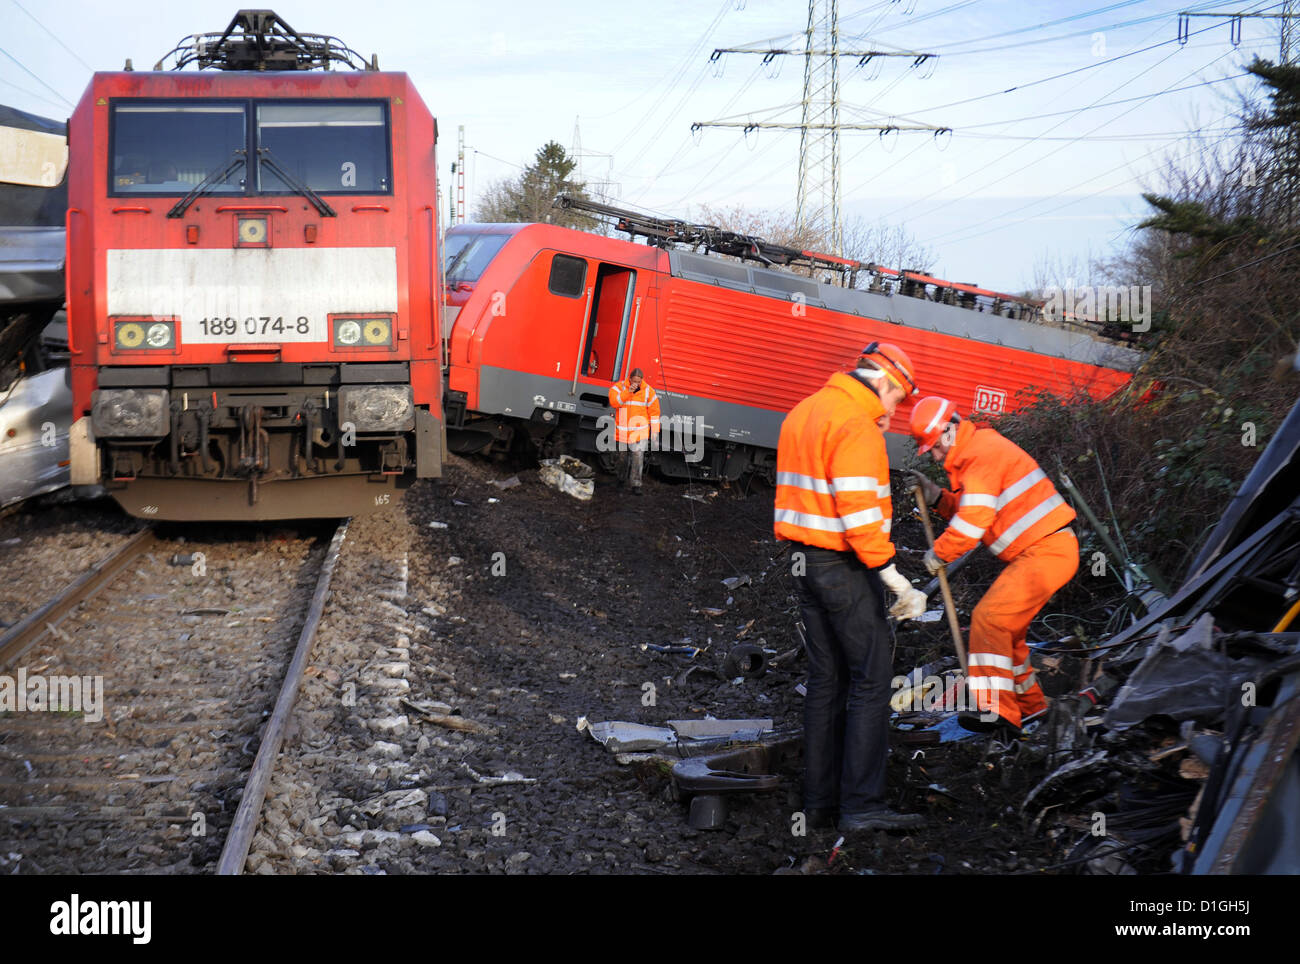 Workers stand in front of a derailed fright train in Duesseldorf, Germany, 20 December 2012. On 19 December 2012, - Stock Image